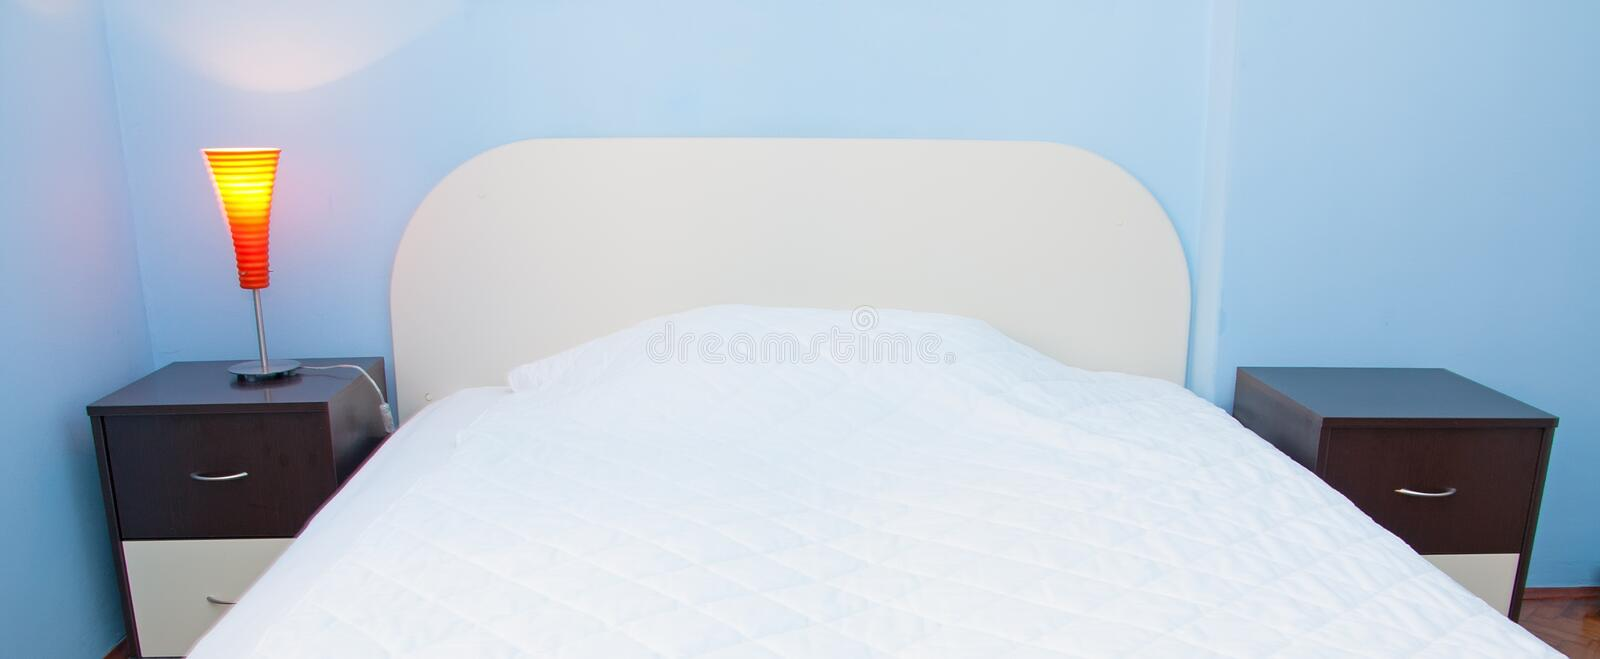 Download Bedroom stock photo. Image of resting, decoration, fancy - 29367706